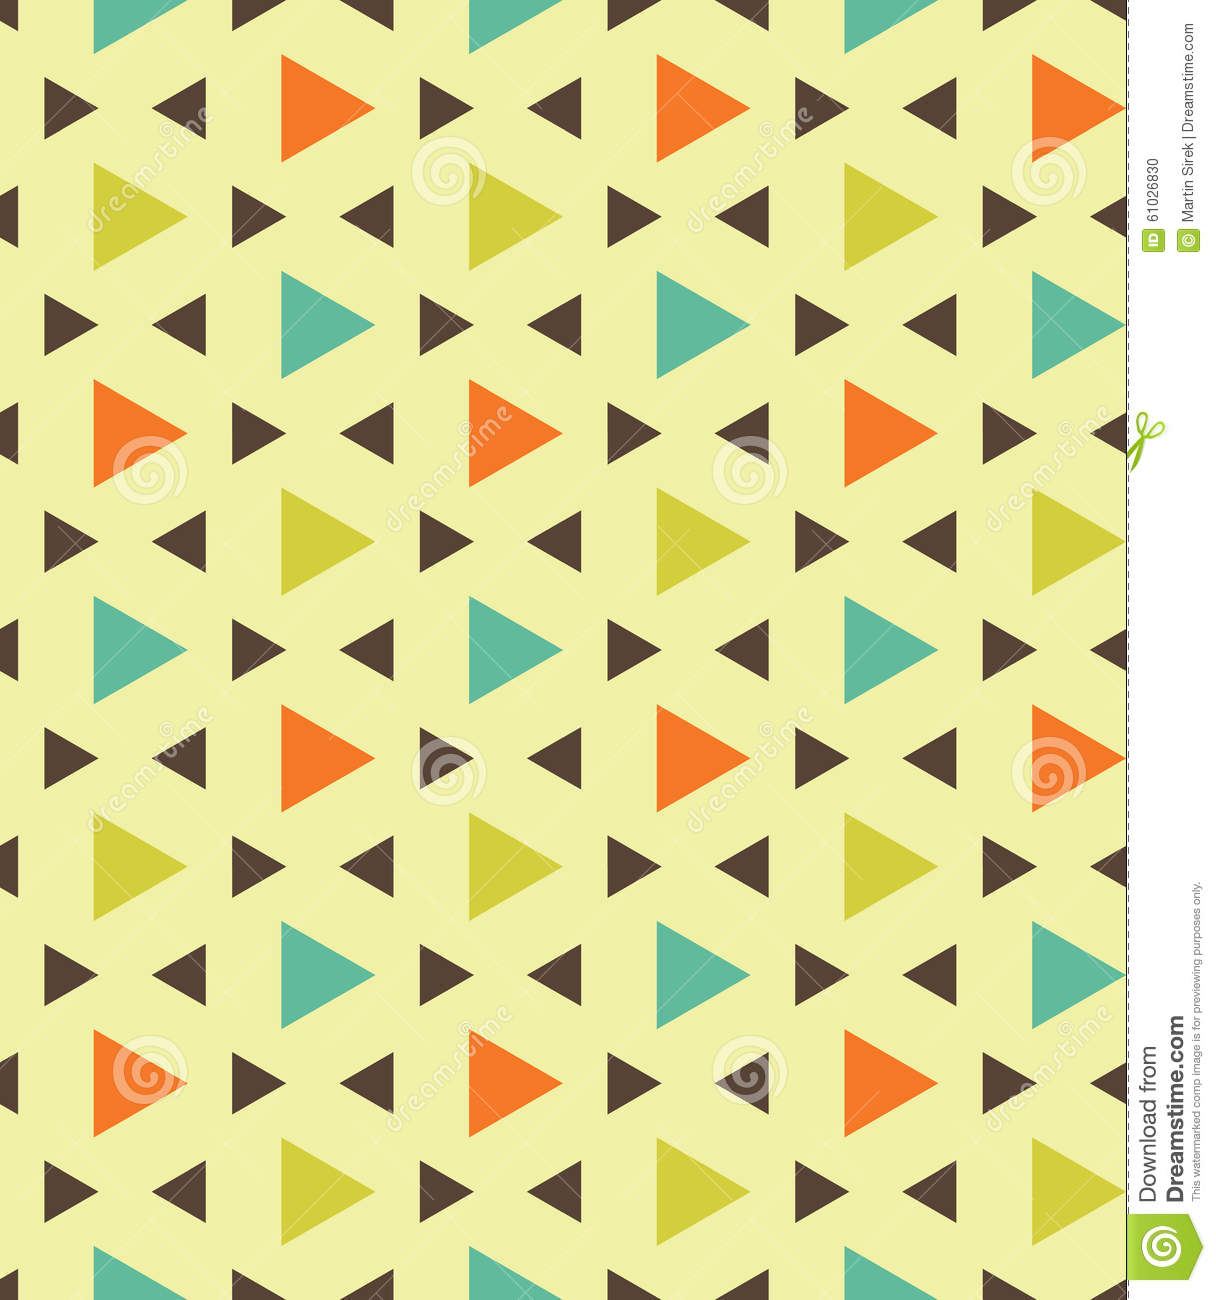 Pin Colorful Polygons Wallpaper 1920x1080 On Pinterest